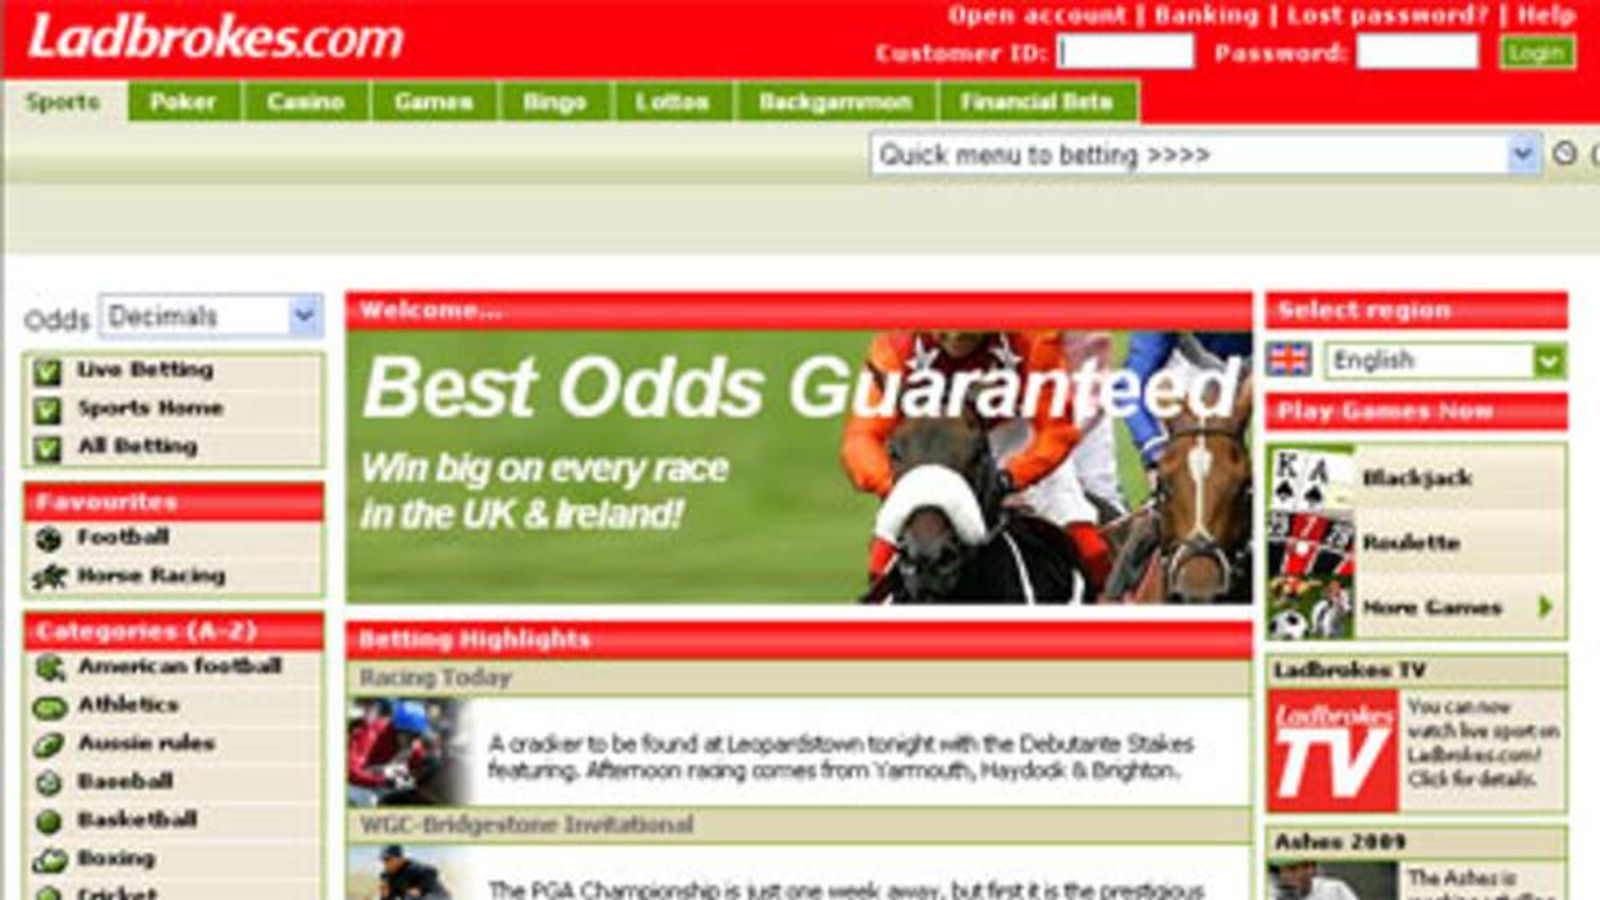 The Ladbrokes website